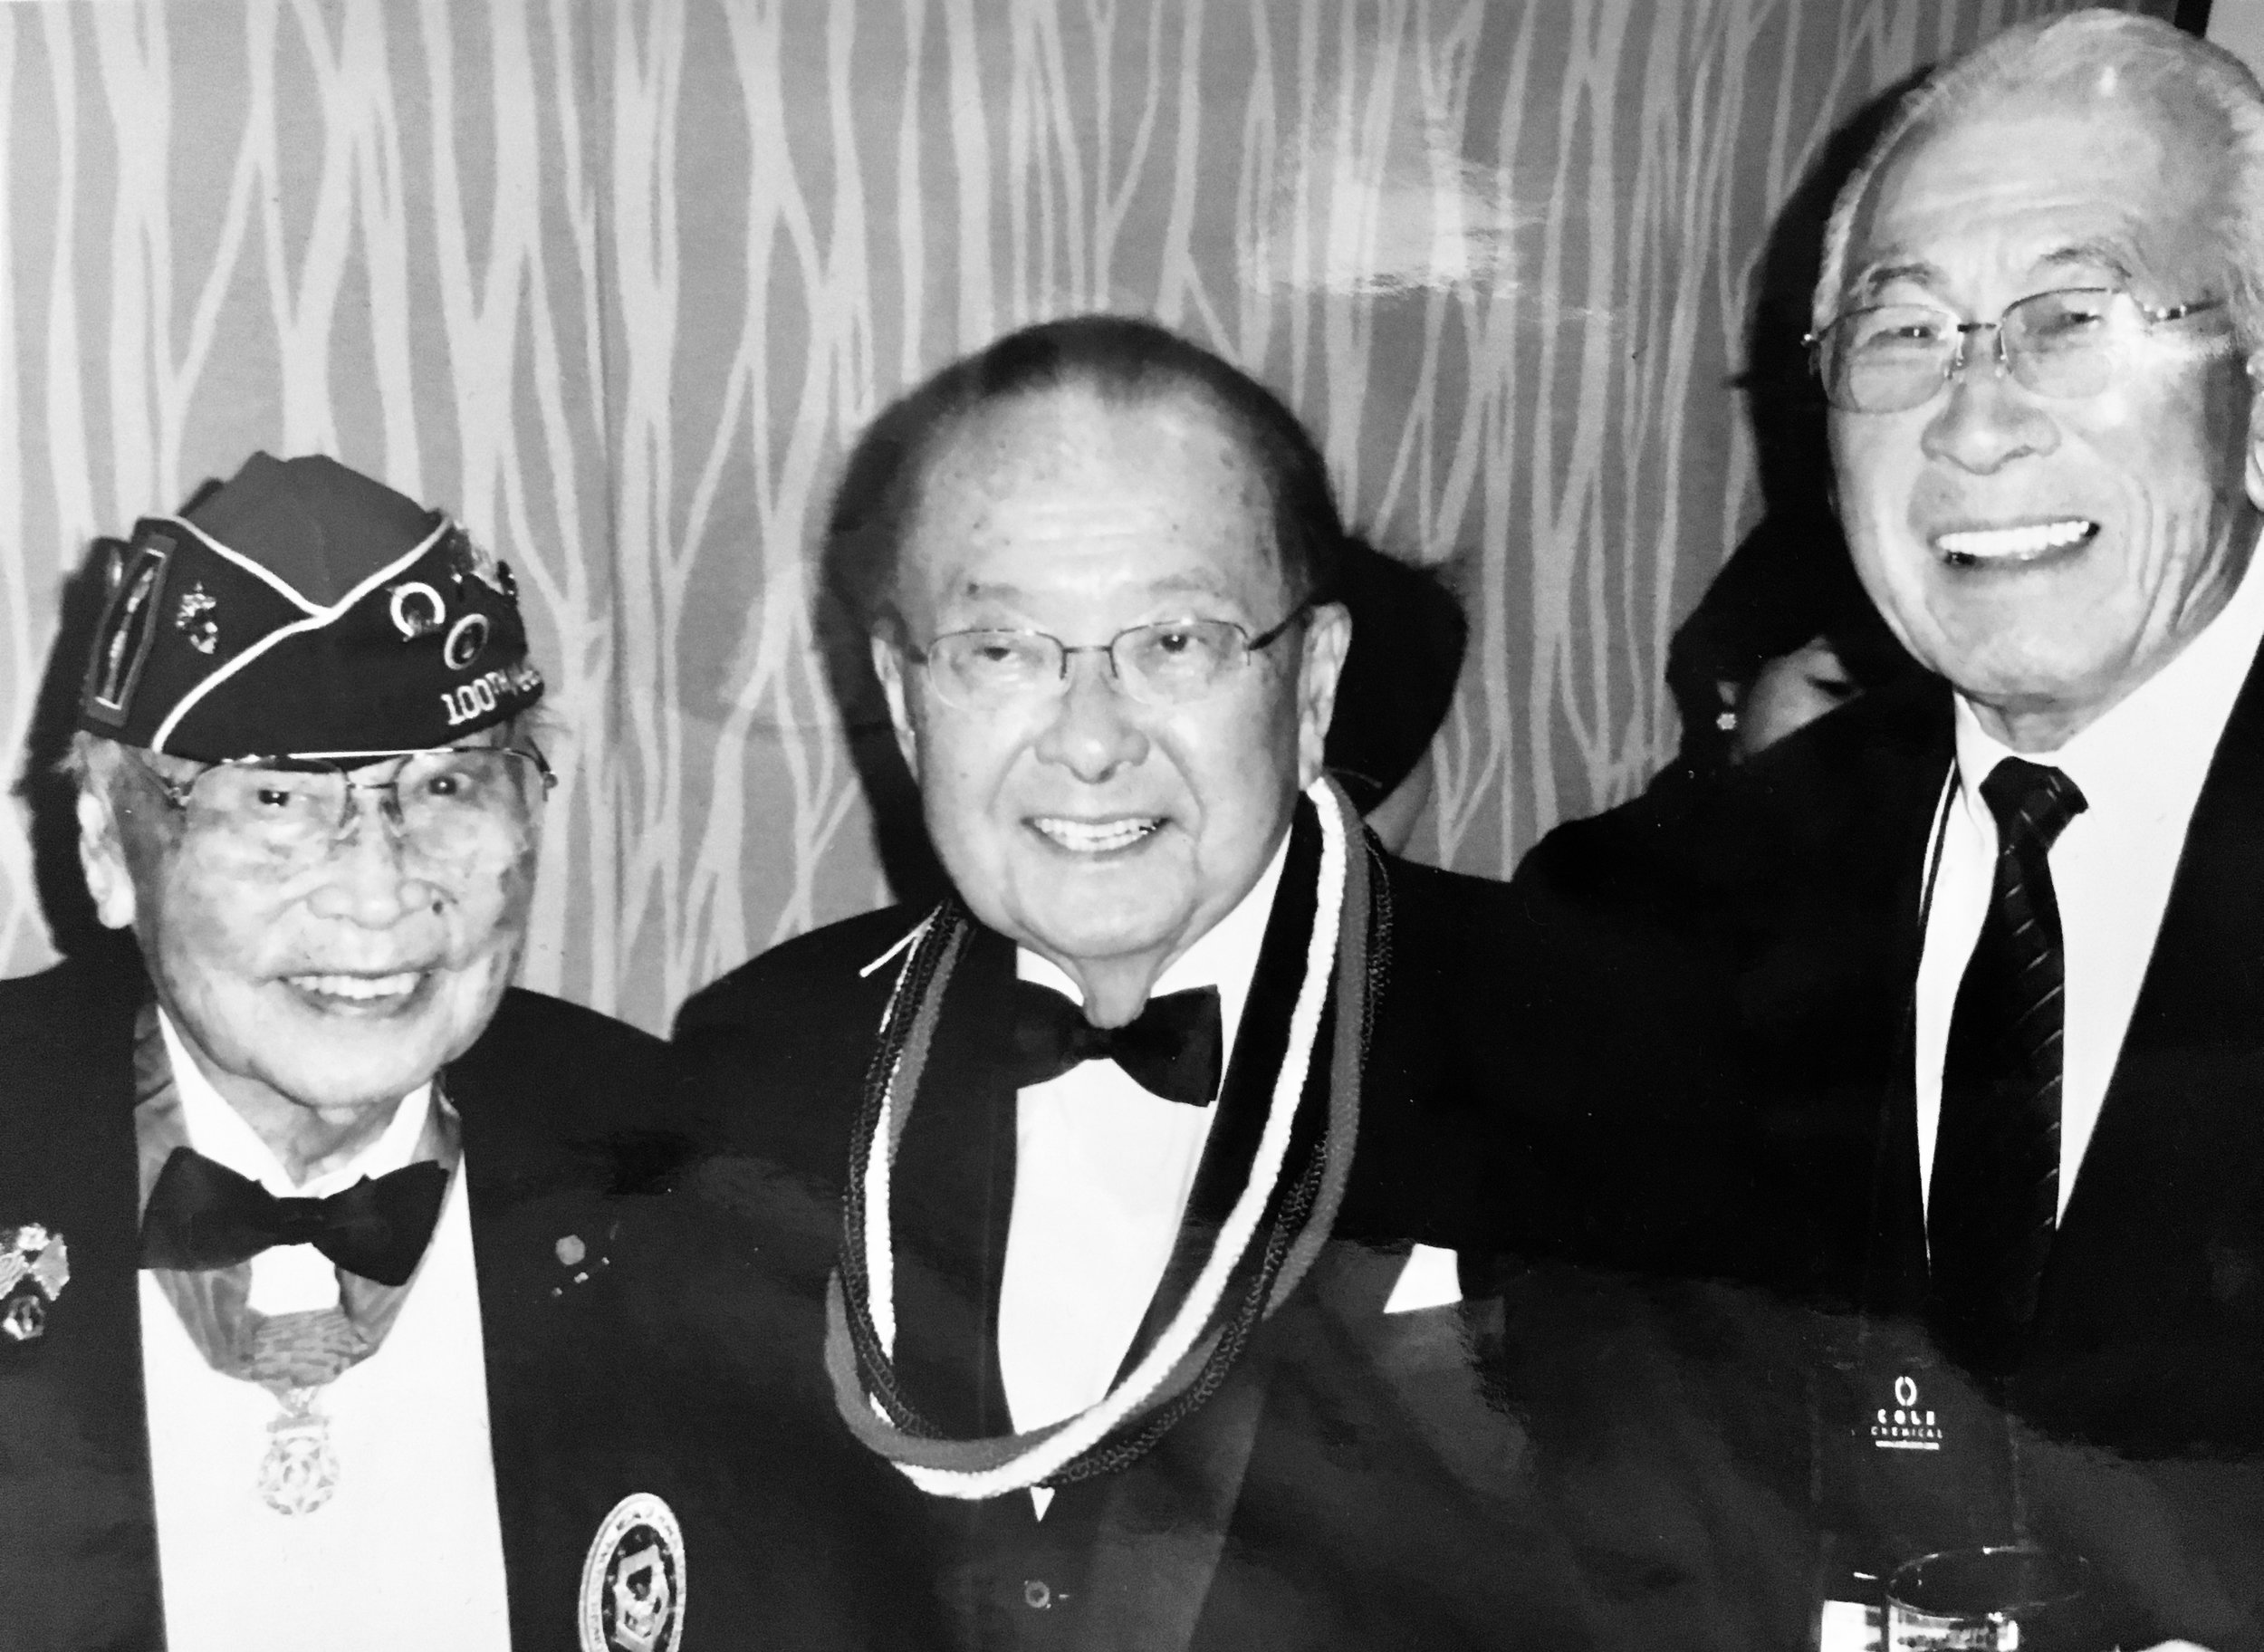 Senator Daniel Inouye (center) and Lawson Sakai (right).